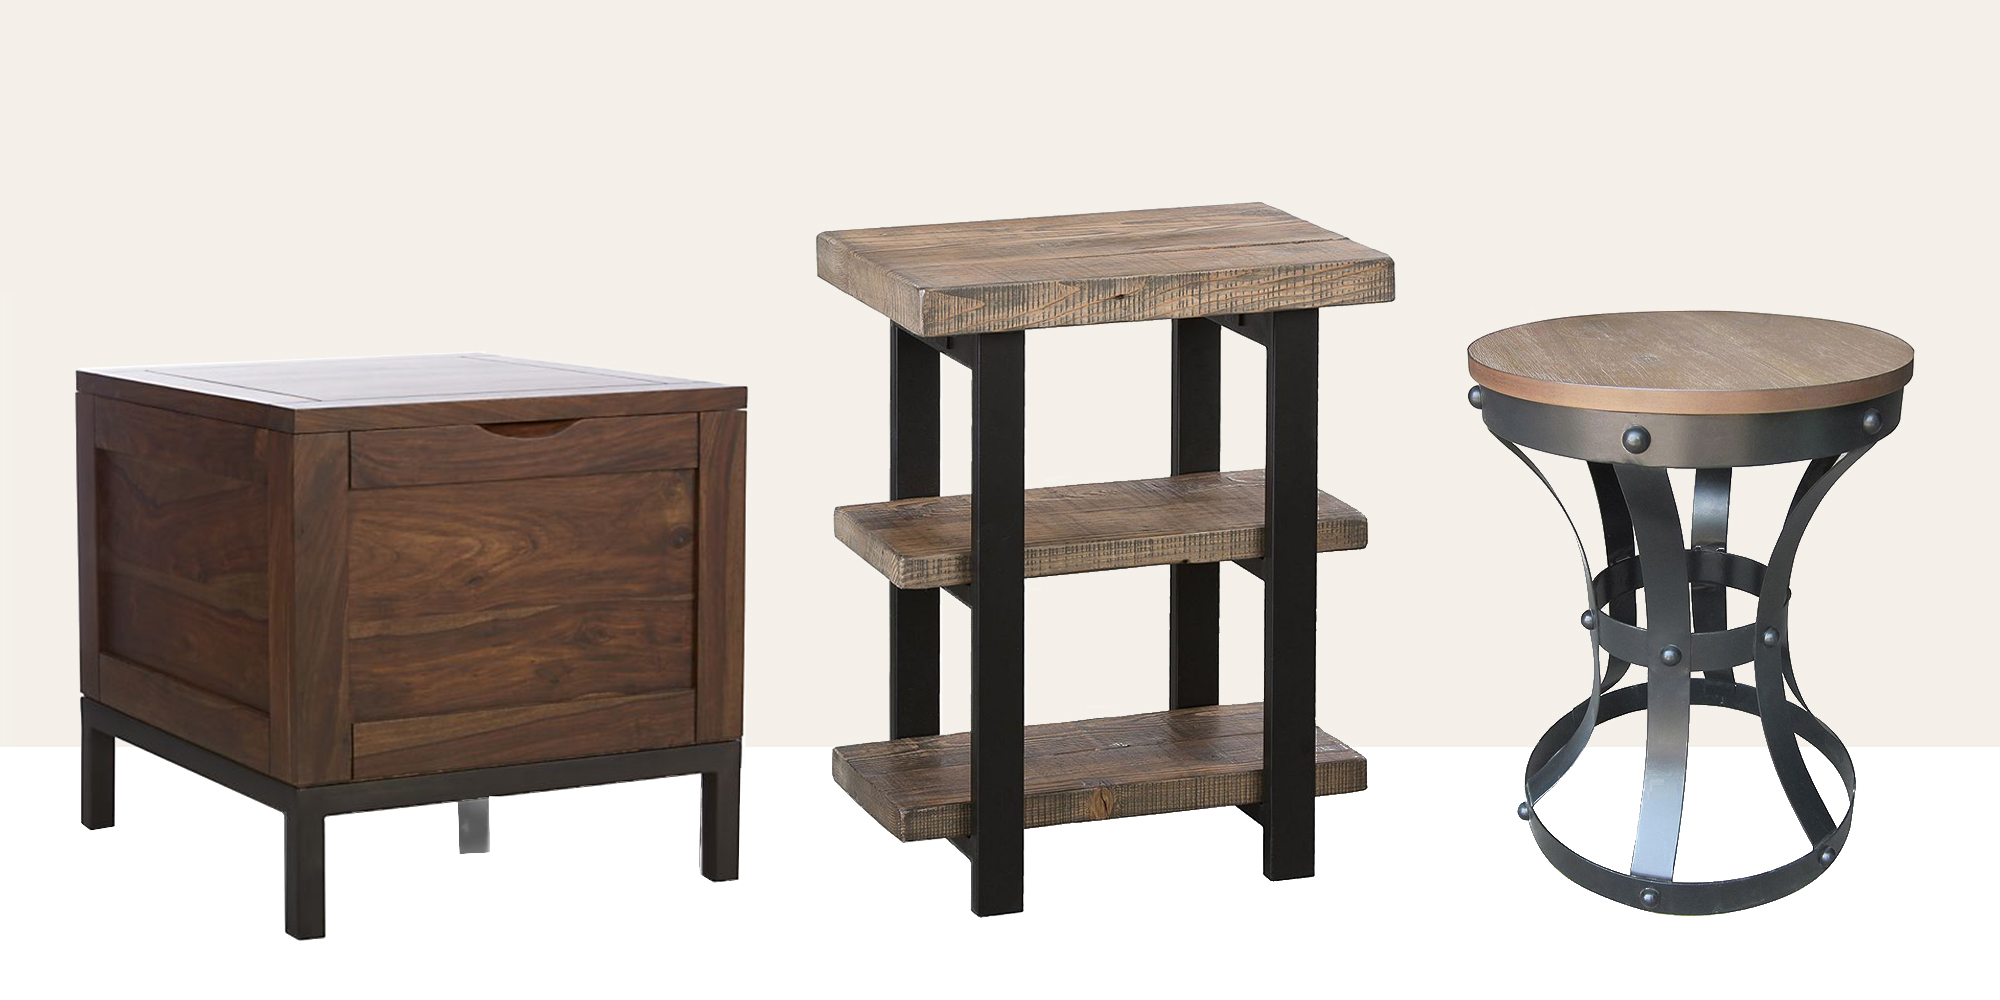 Small Decorative End Tables 15 Best Rustic End Tables In 2018 Modern Country Wood